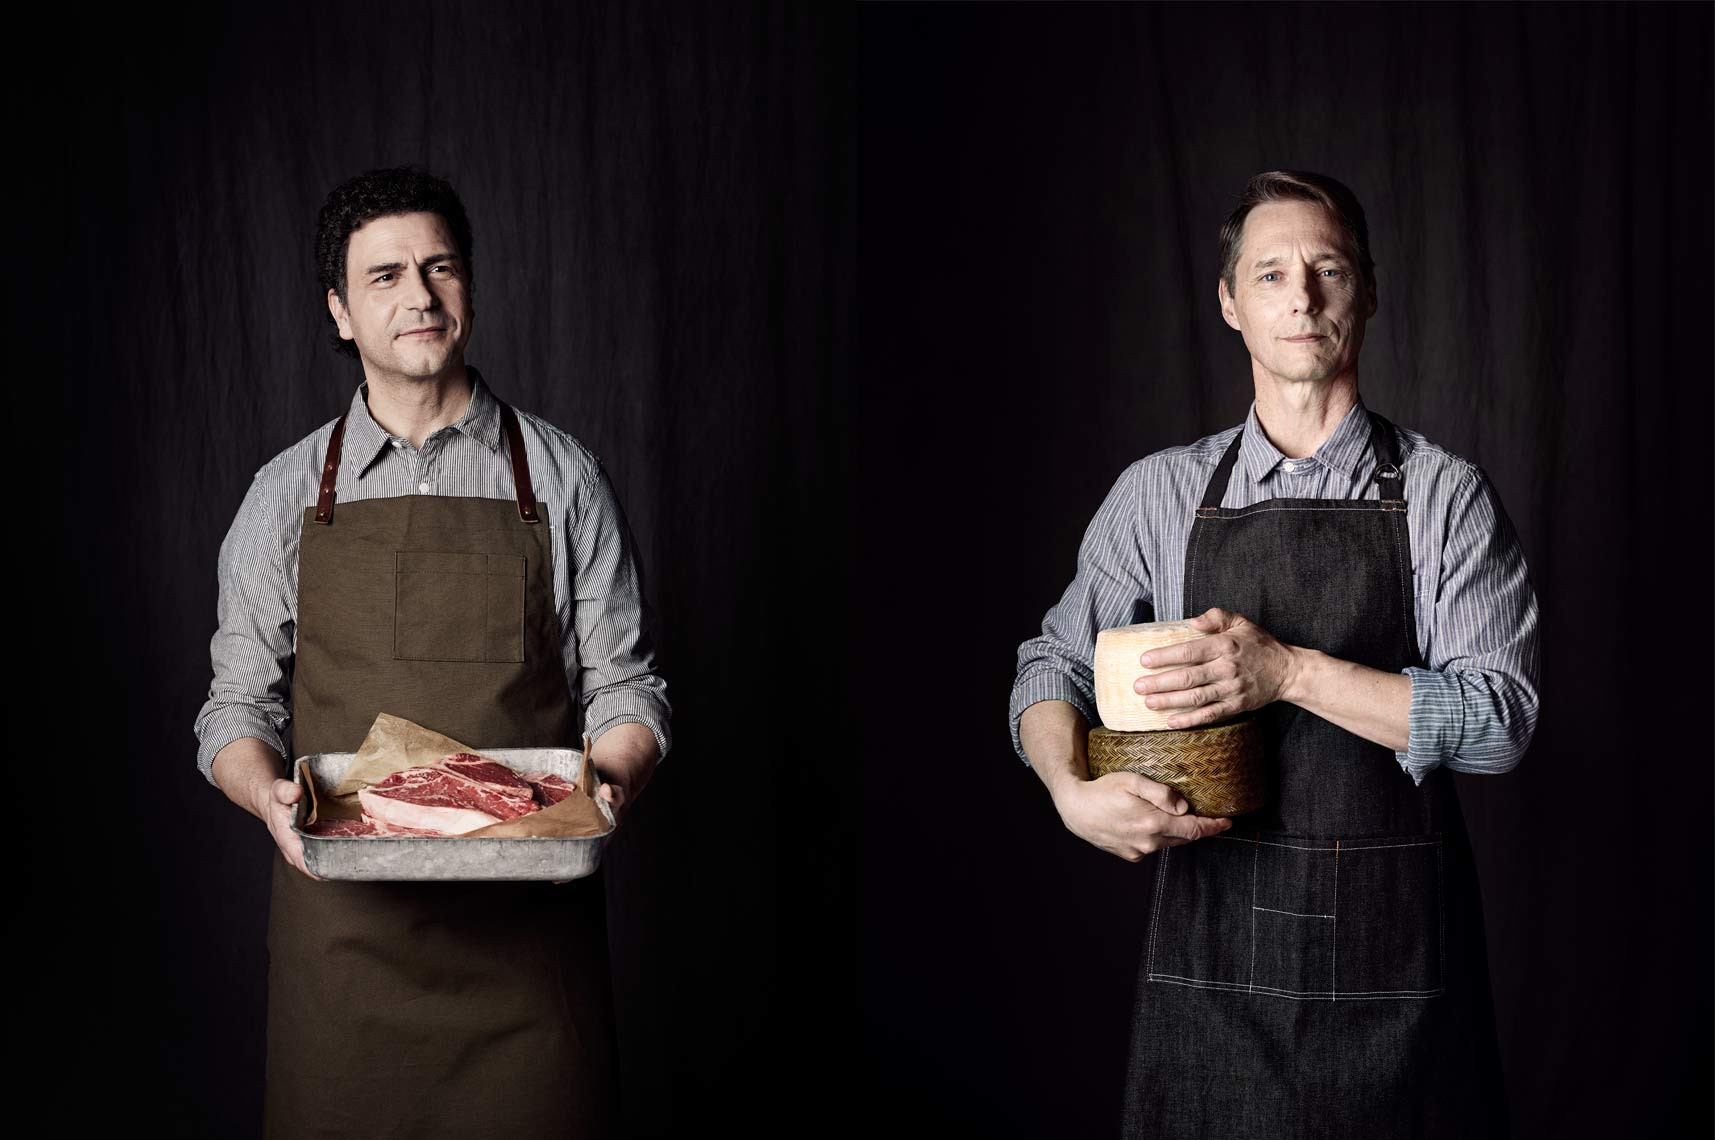 Butcher & Cheesemaker Portraits